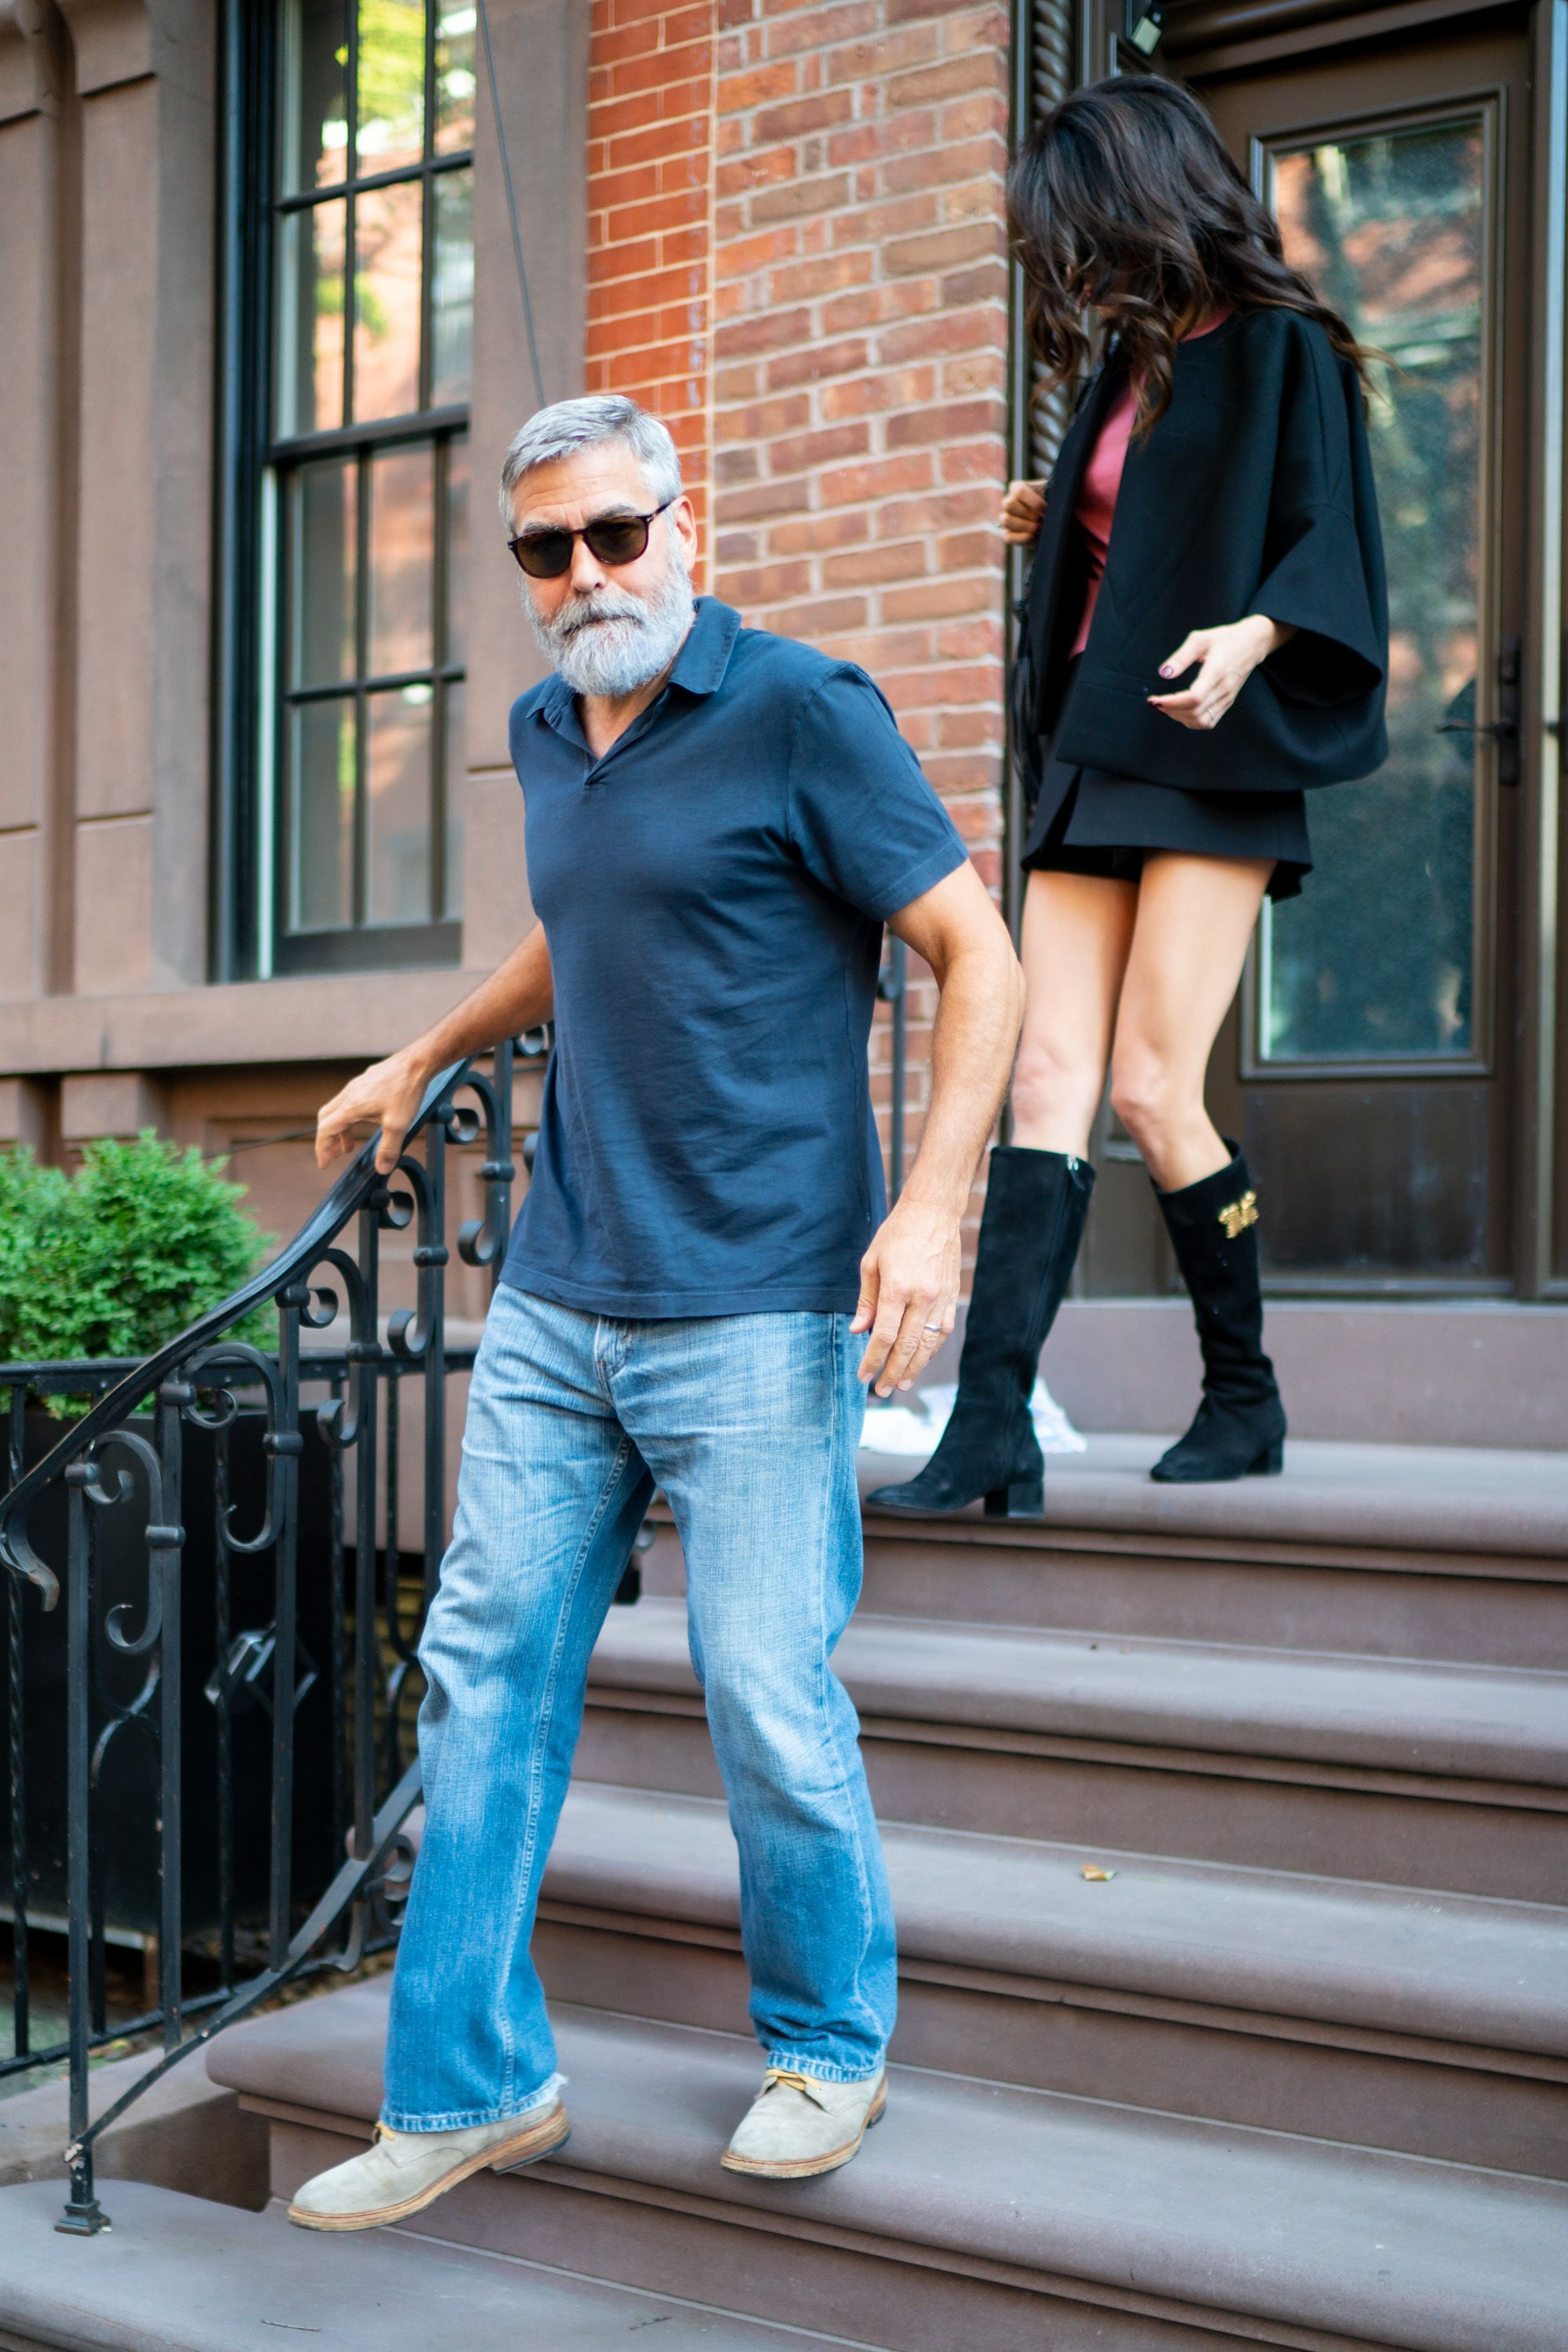 George Clooney Paired His New Beard With Some Easygoing Style